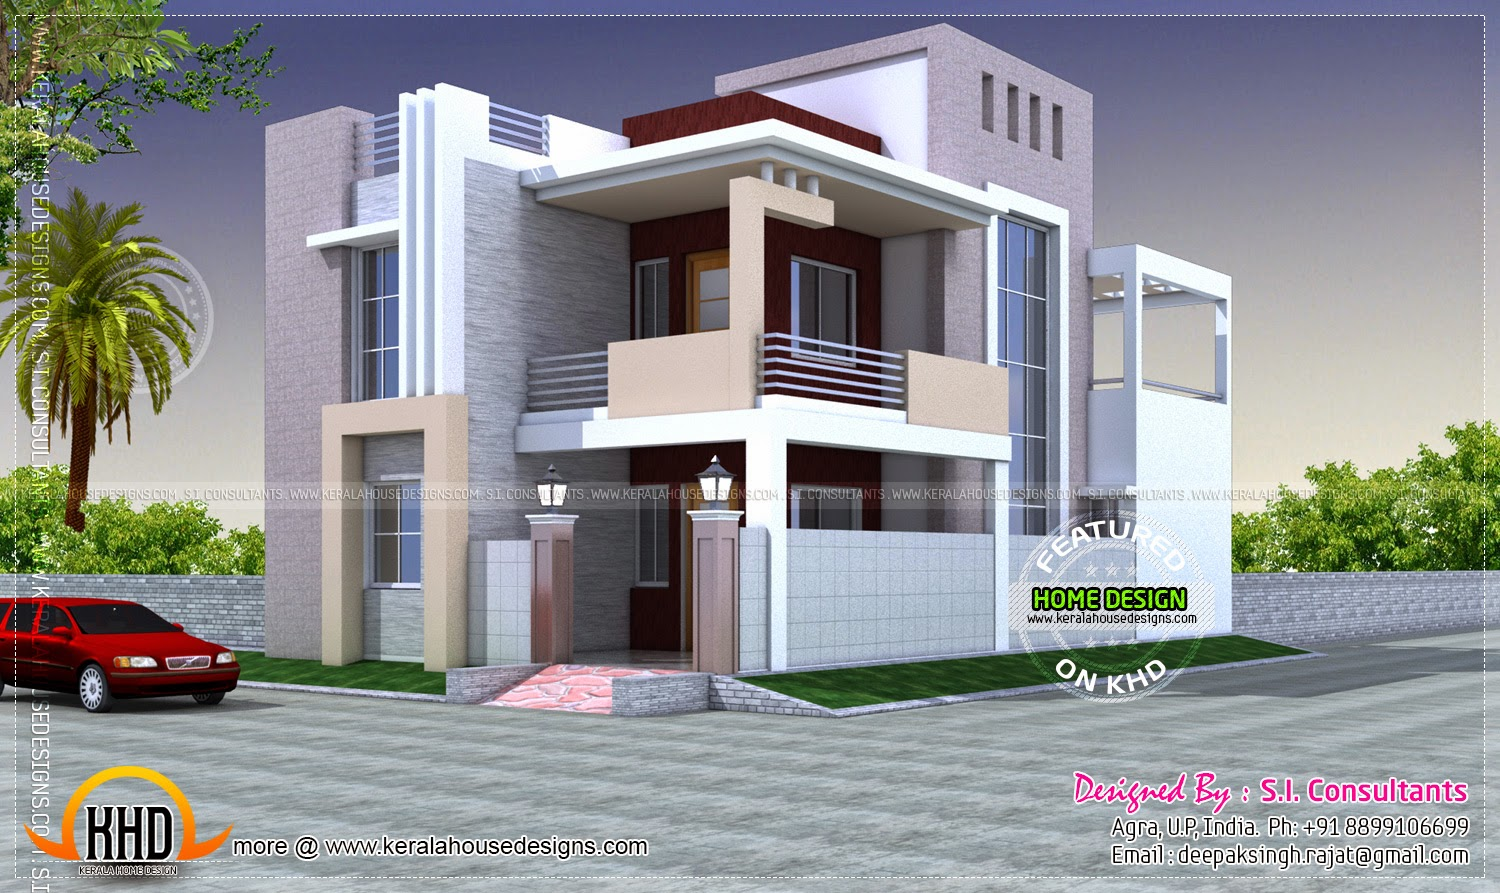 House exterior elevation modern style kerala home design for Indian house exterior design pictures